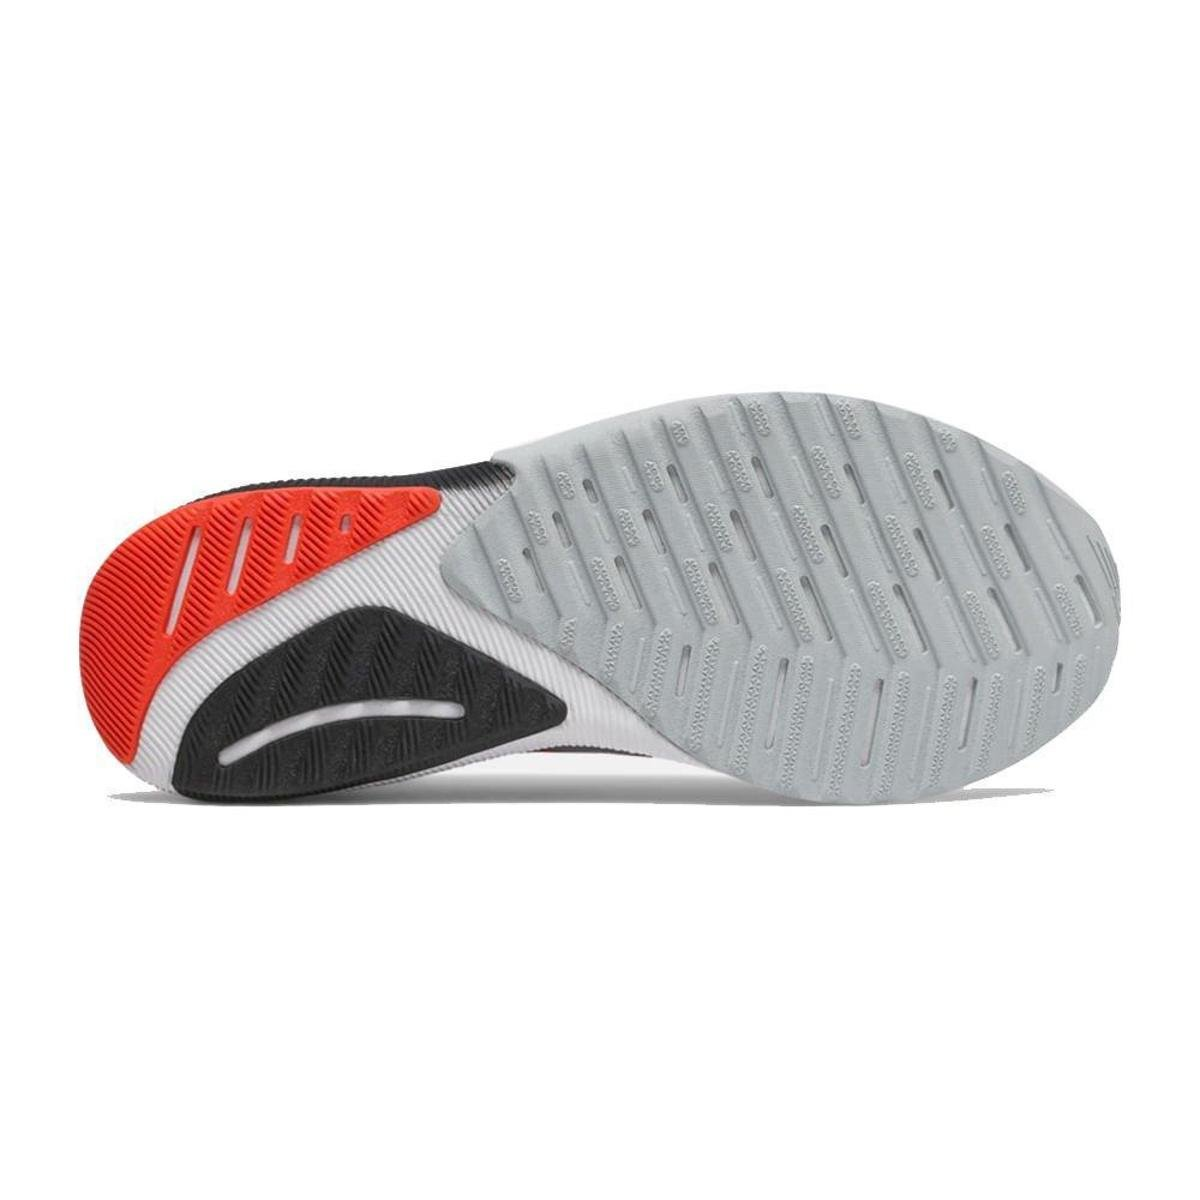 TENIS NEW BALANCE FUELCELL PROPEL V2 MFCPRCL2 CINZA VERMELHO MASCULINO